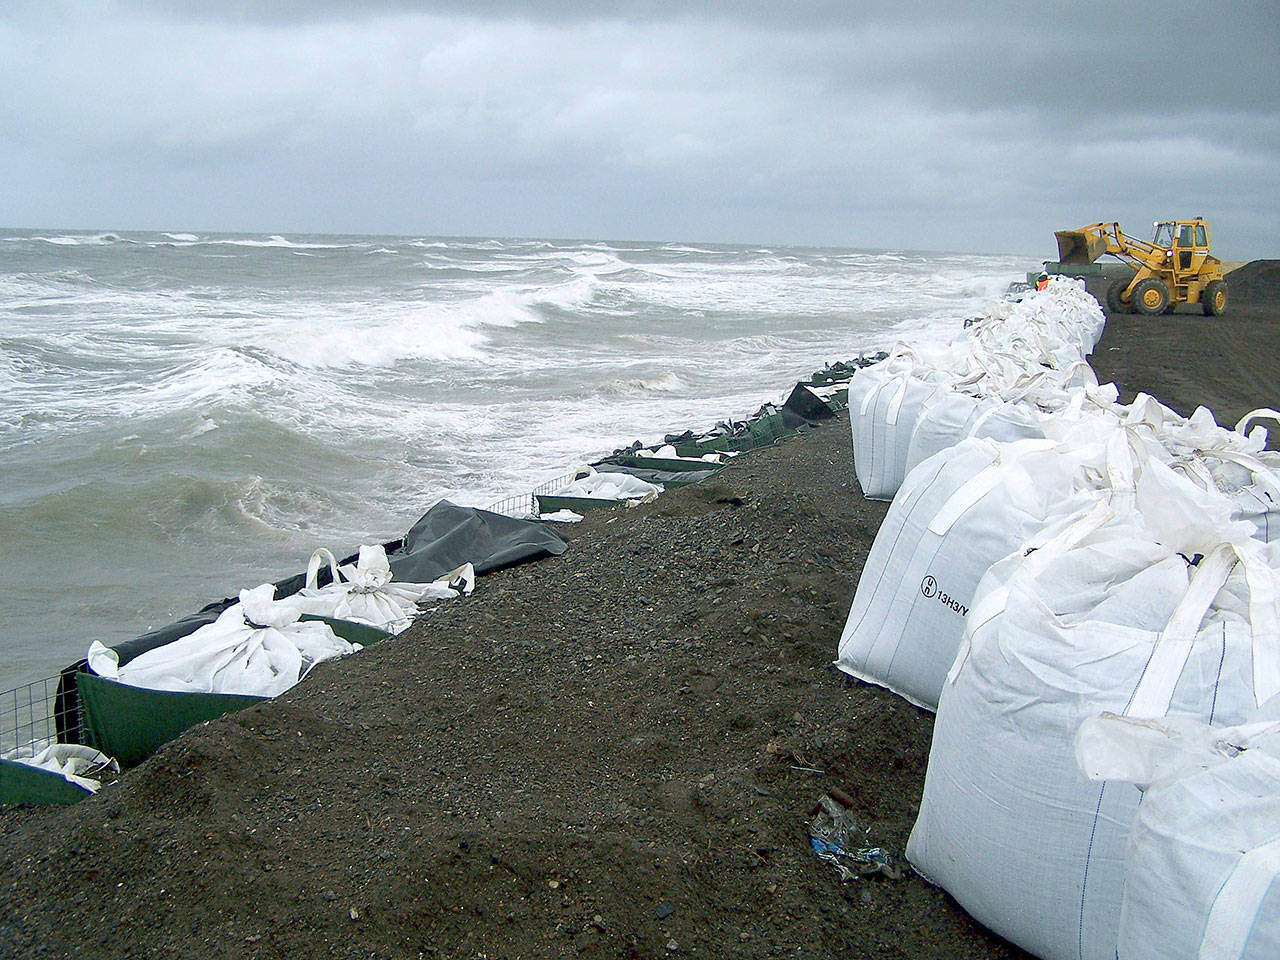 Sandbags are stacked along the seawall in Kivalina, Alaska, in September 2017. Northern Alaska coastal communities and climate scientists say sea ice disappeared far earlier than normal this spring and it's affecting wildlife. The Anchorage Daily News reported that ice melted because of exceptionally warm ocean temperatures. (AP Photo/Mary Sage, File)